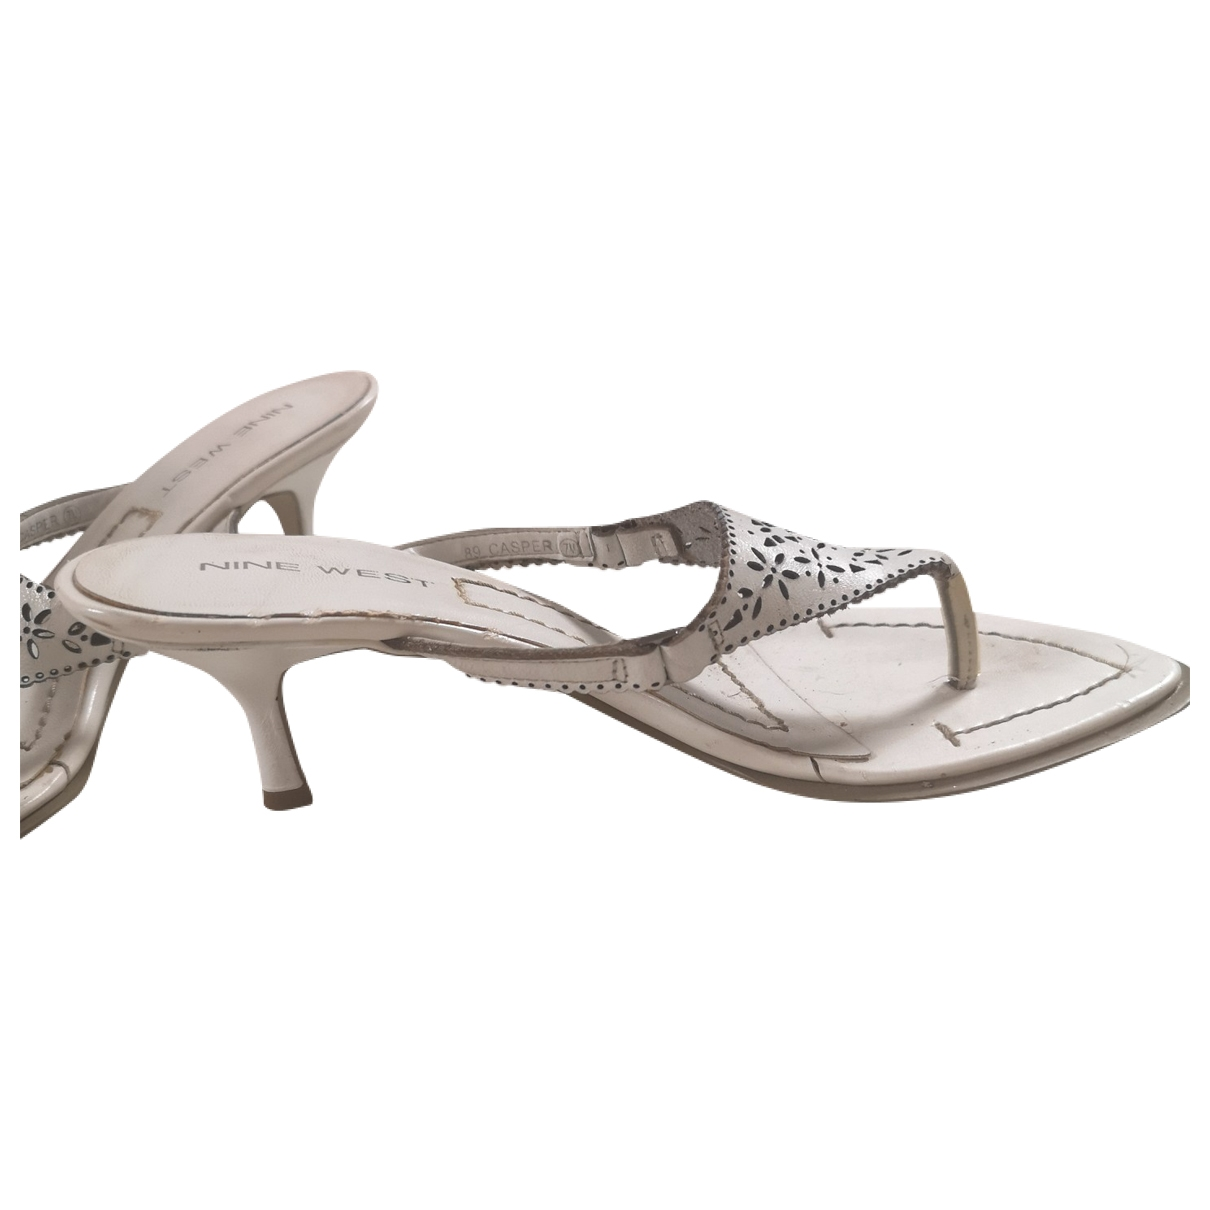 Nine West \N White Leather Sandals for Women 7 US